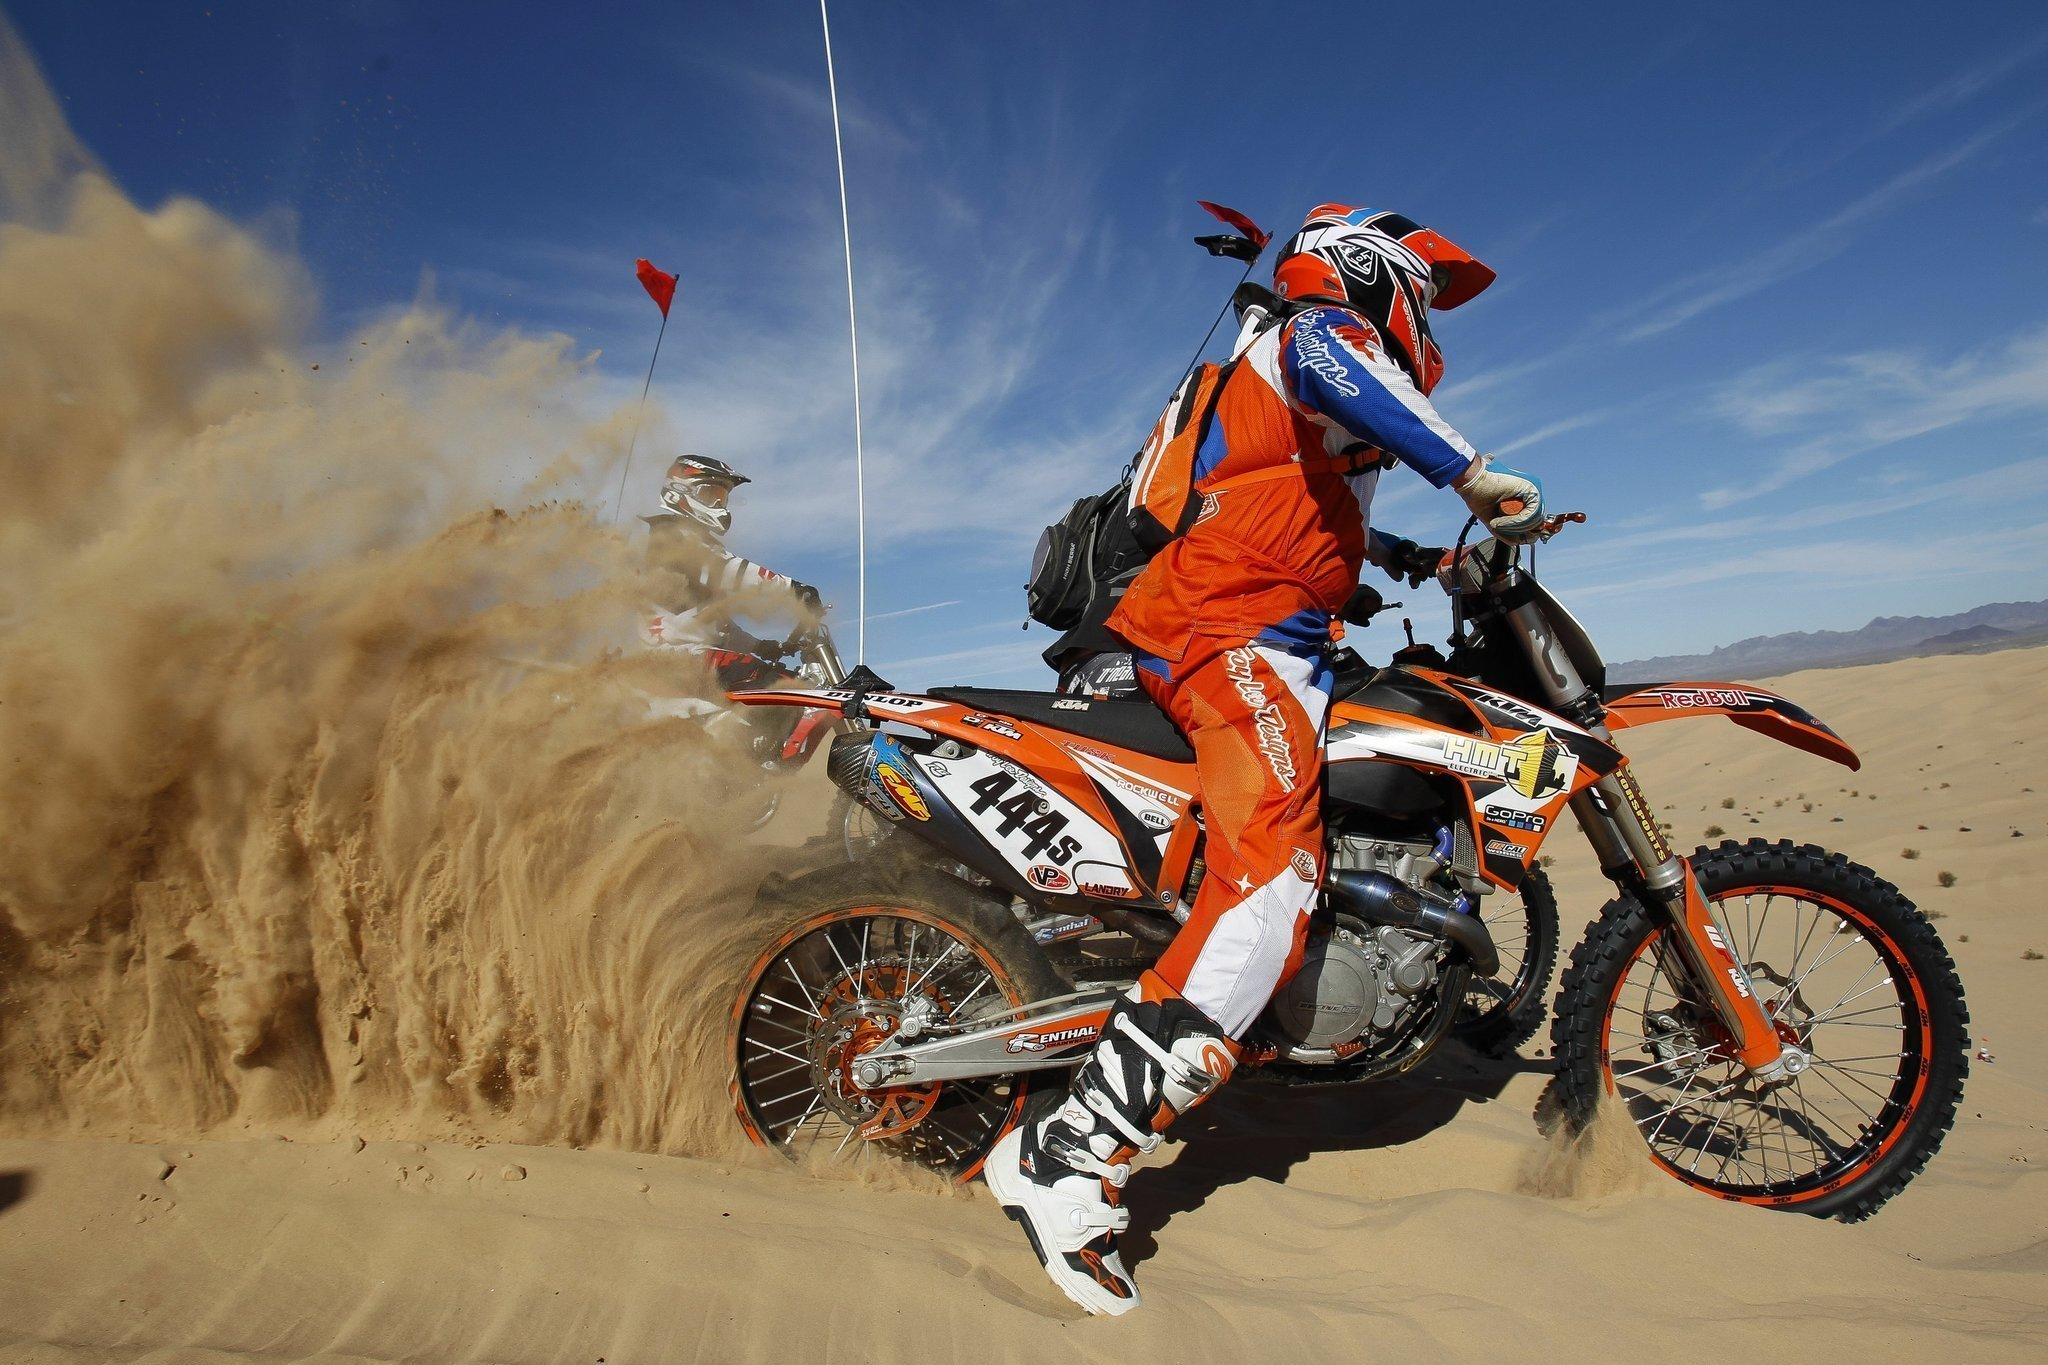 Why Imperial Sand Dunes are off roading mecca The San Diego Union